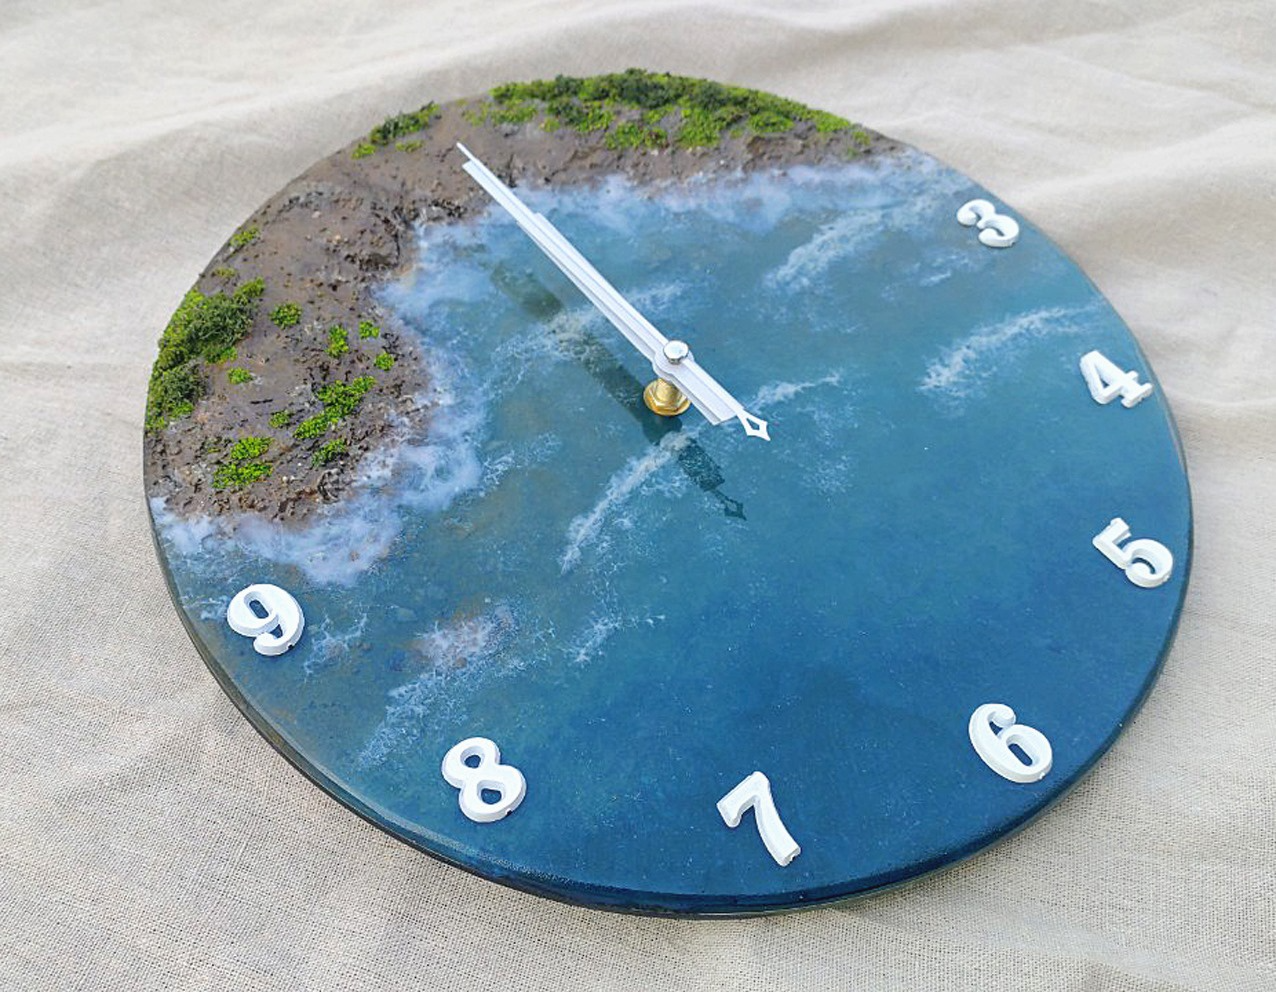 In photo and video: Lifelike clock paintings made of glue, sand and stone